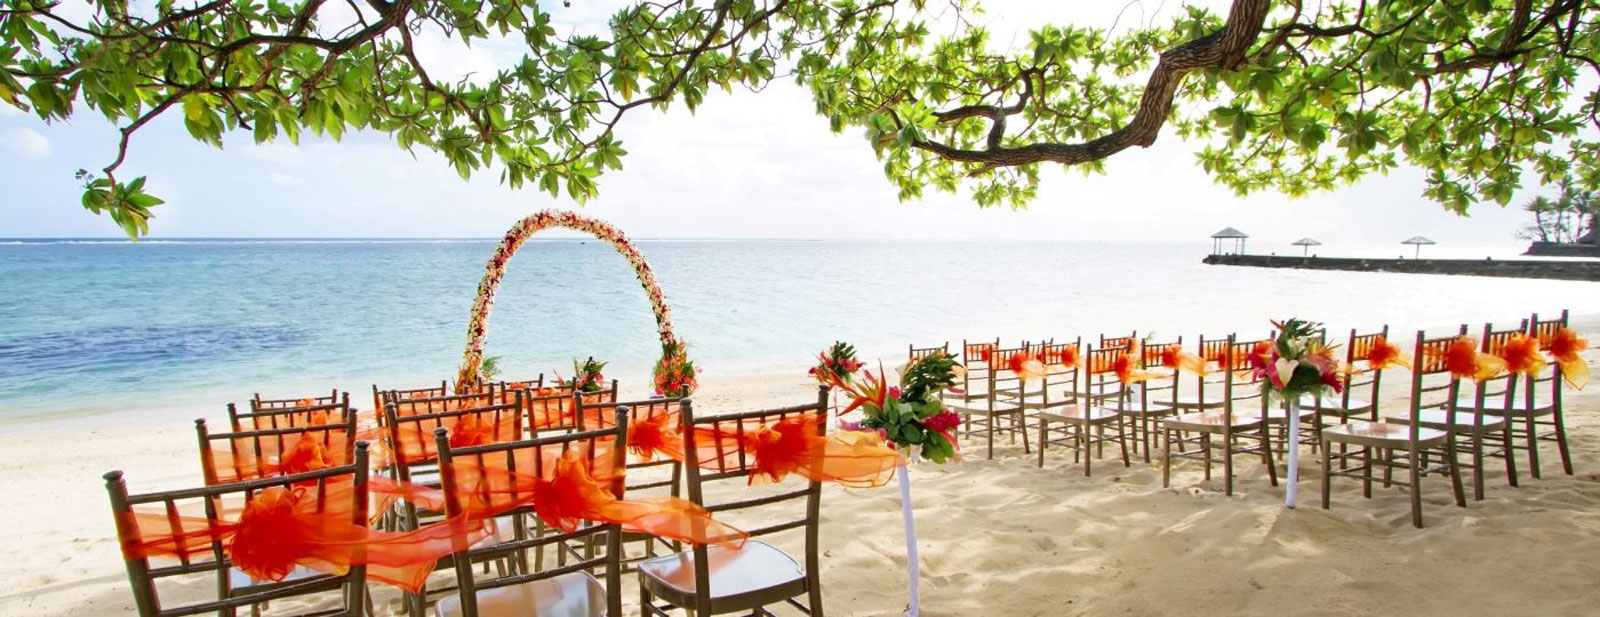 wedding-venues-on-the-coral-coast